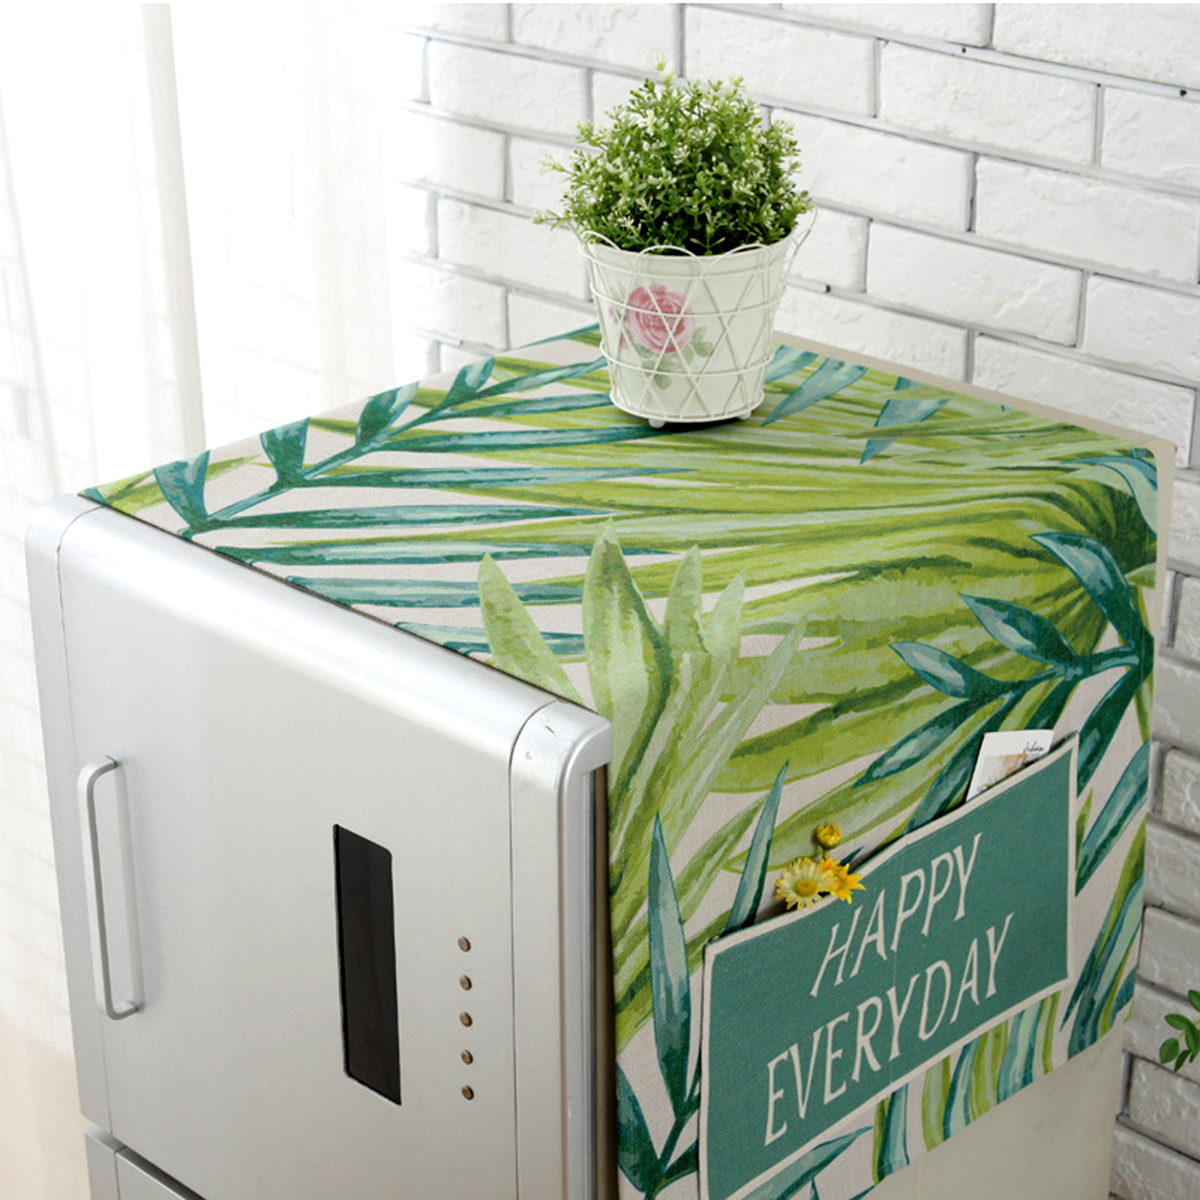 Household Drum Washing Machine Cover Portable Single Door Refrigerator Cover Dustproof Covers